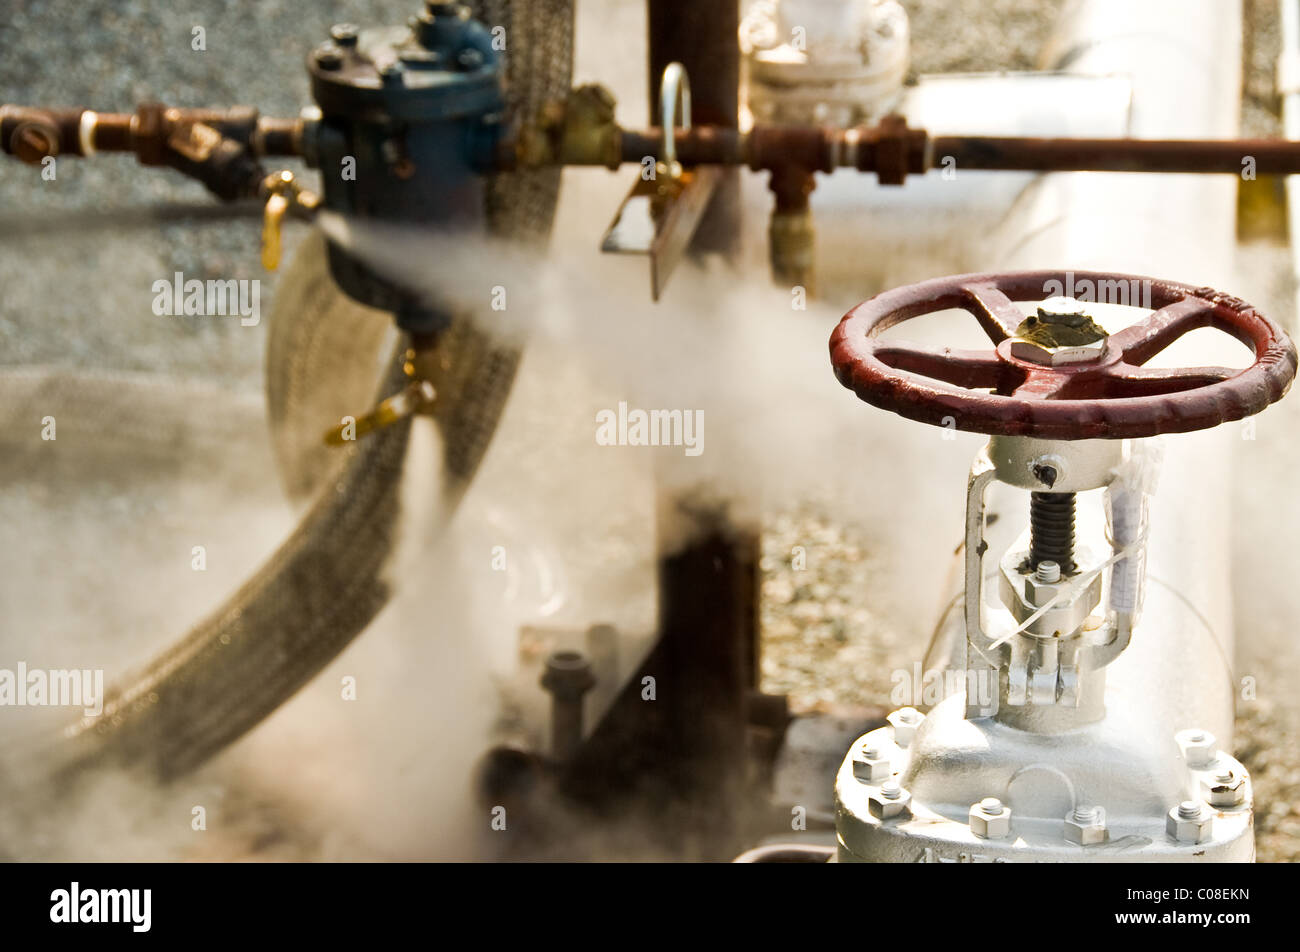 A red valve and a check valve releasing steam. - Stock Image